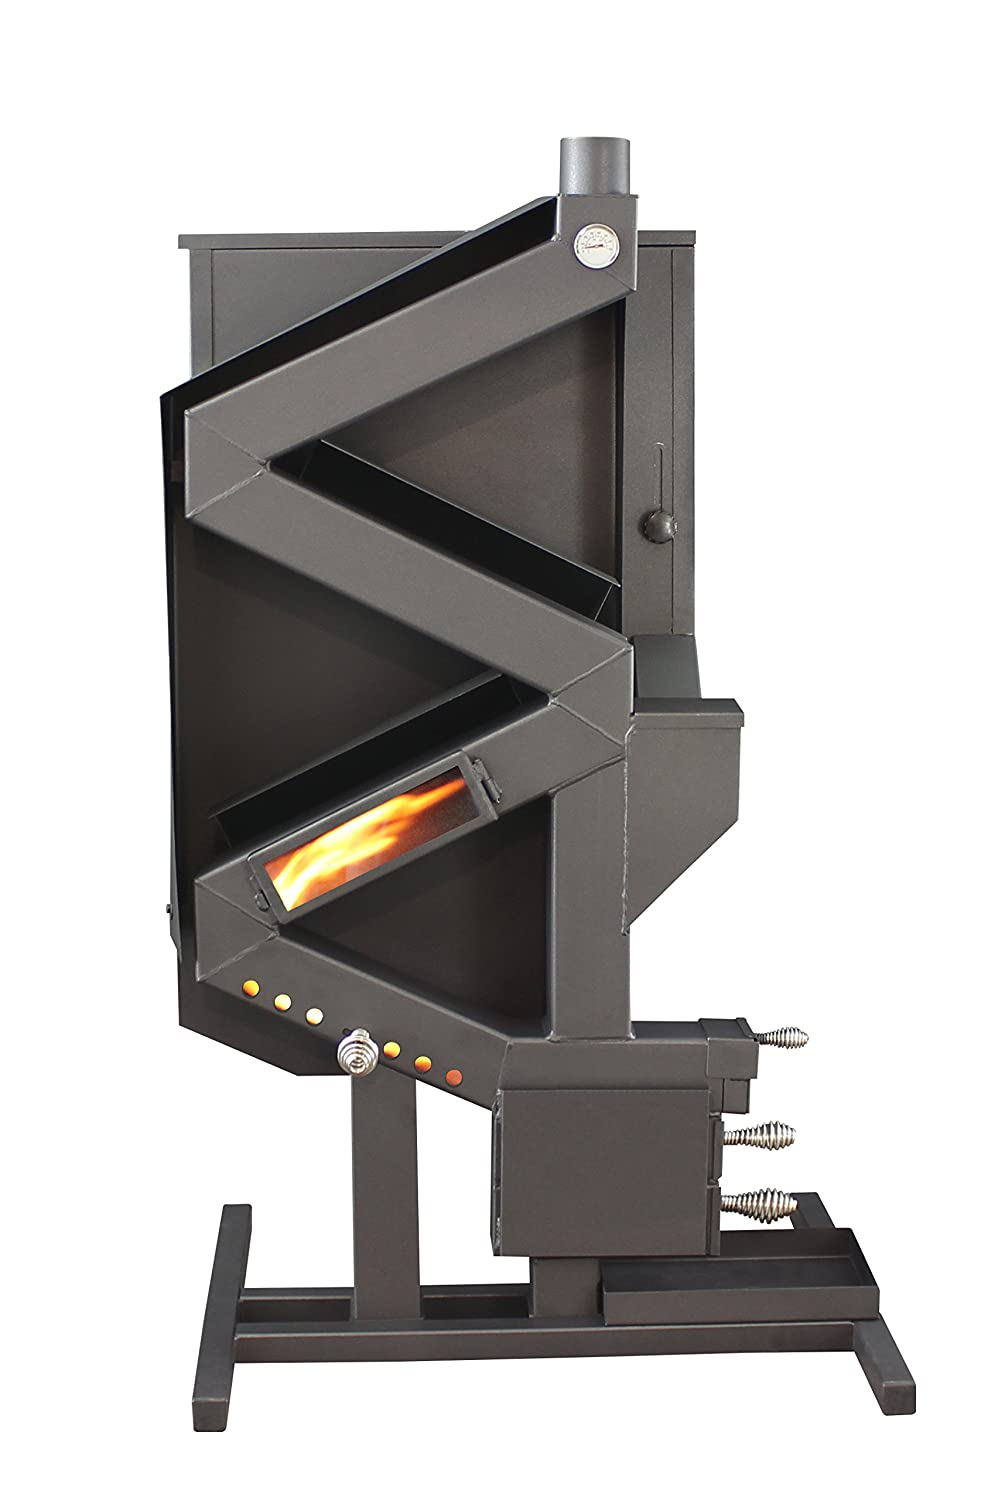 Amazon.com: US Stove GW1949 Wiseway Non-Electric Pellet Stove: Home on pellet stove heat recovery, pellet stove how it works, pellet stove thermostat wiring, pellet stove control panel, pellet stove maintenance, pellet stove fuses, pellet stove installation, pellet stove inserts, pellet stove igniter, pellet stoves how they work, pellet stove pellets, pellet stove window unit, pellet burning stoves function diagrams, gas stove wiring diagrams, pellet stove parts, pellet stove exhaust system, pellet stove troubleshooting, pellet stove layouts, pellet stove dimensions, pellet stoves in-house,